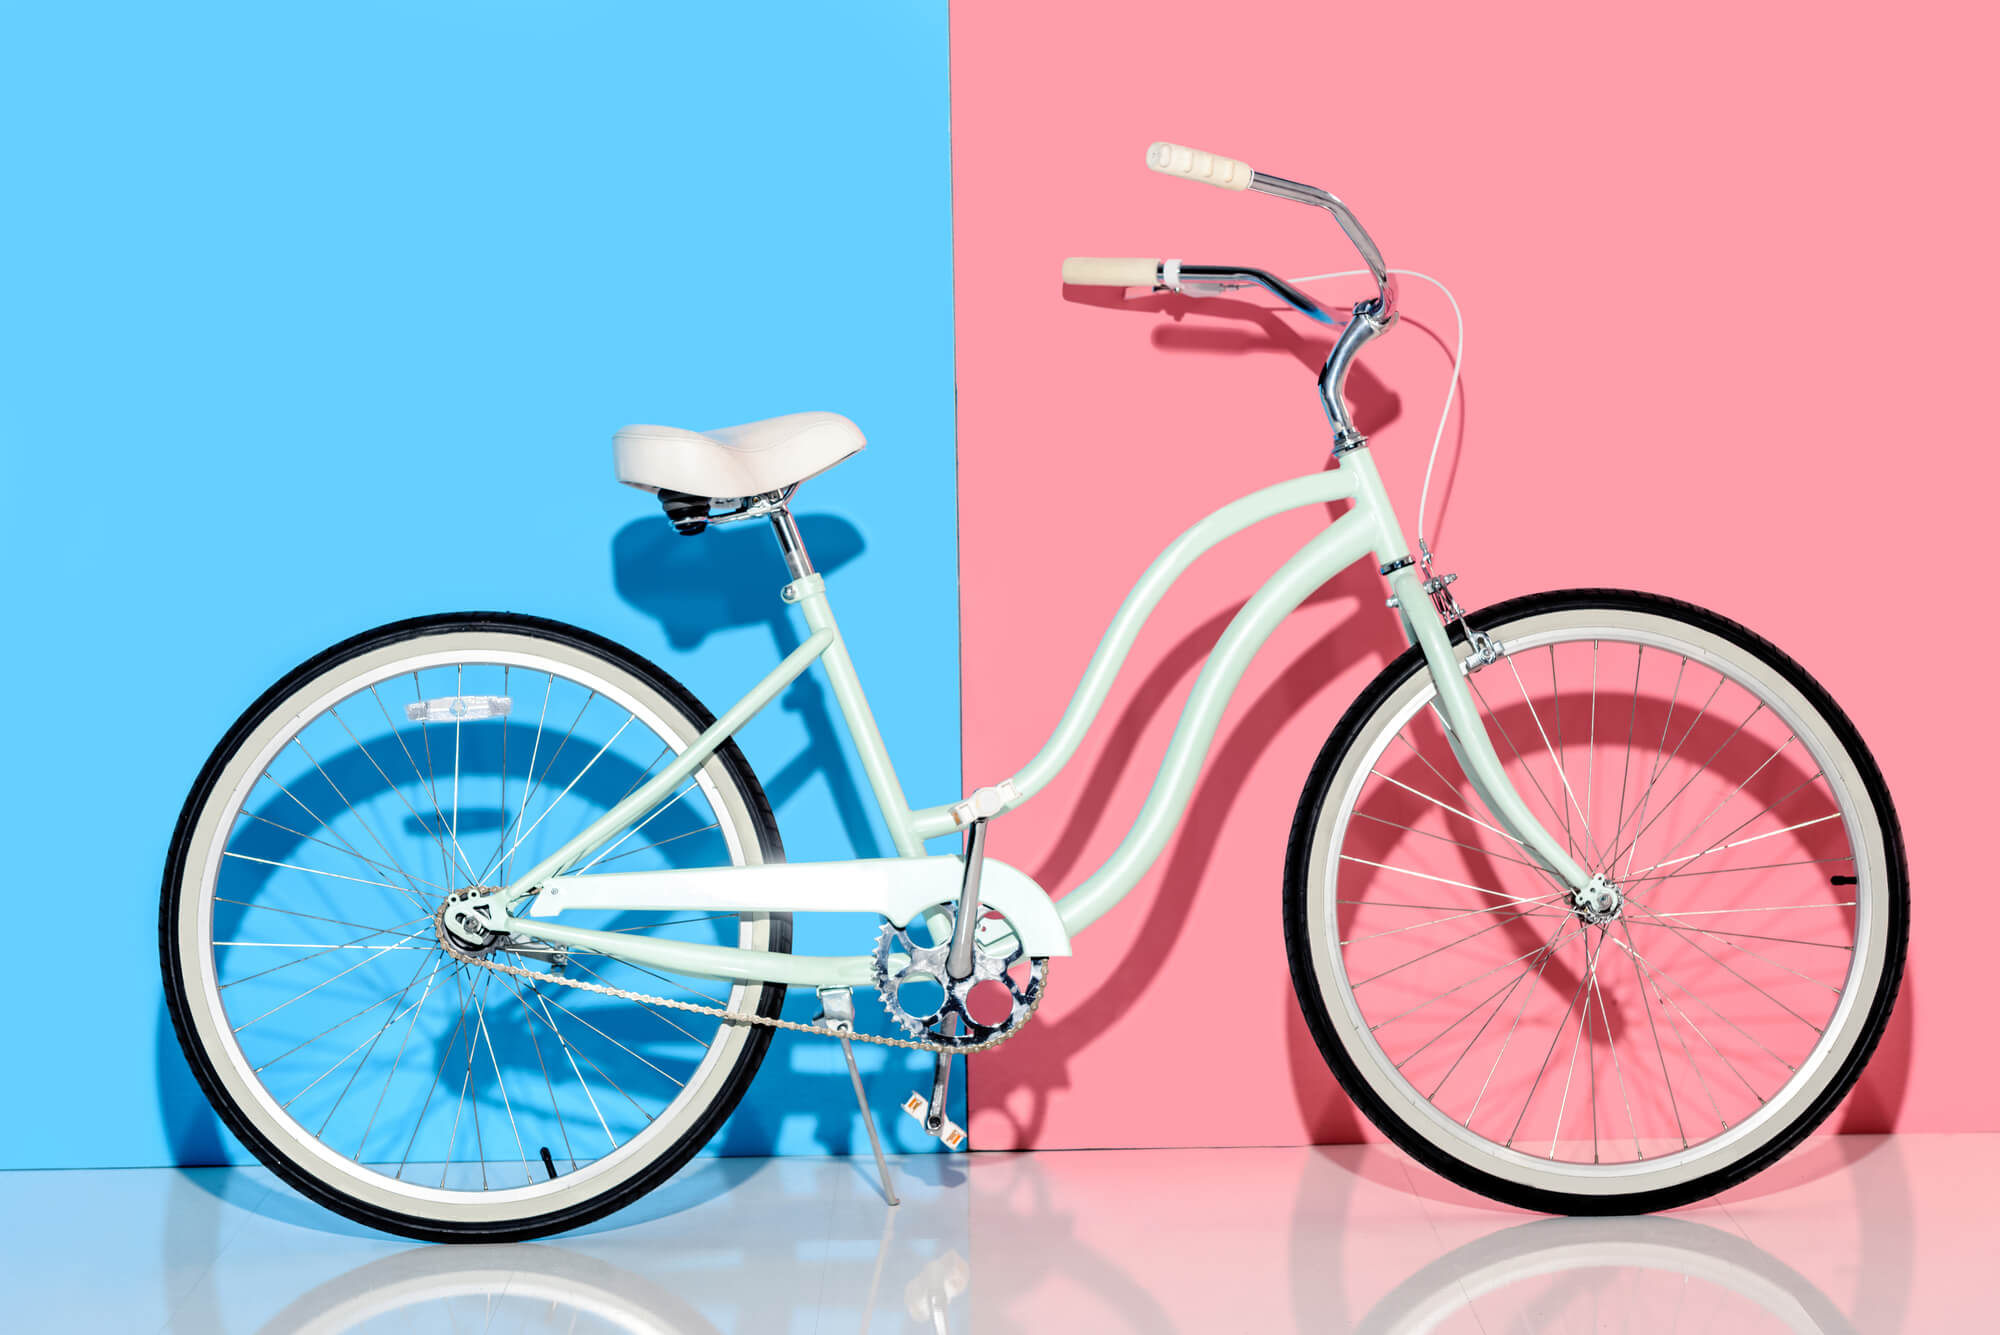 bike against blue and pink background